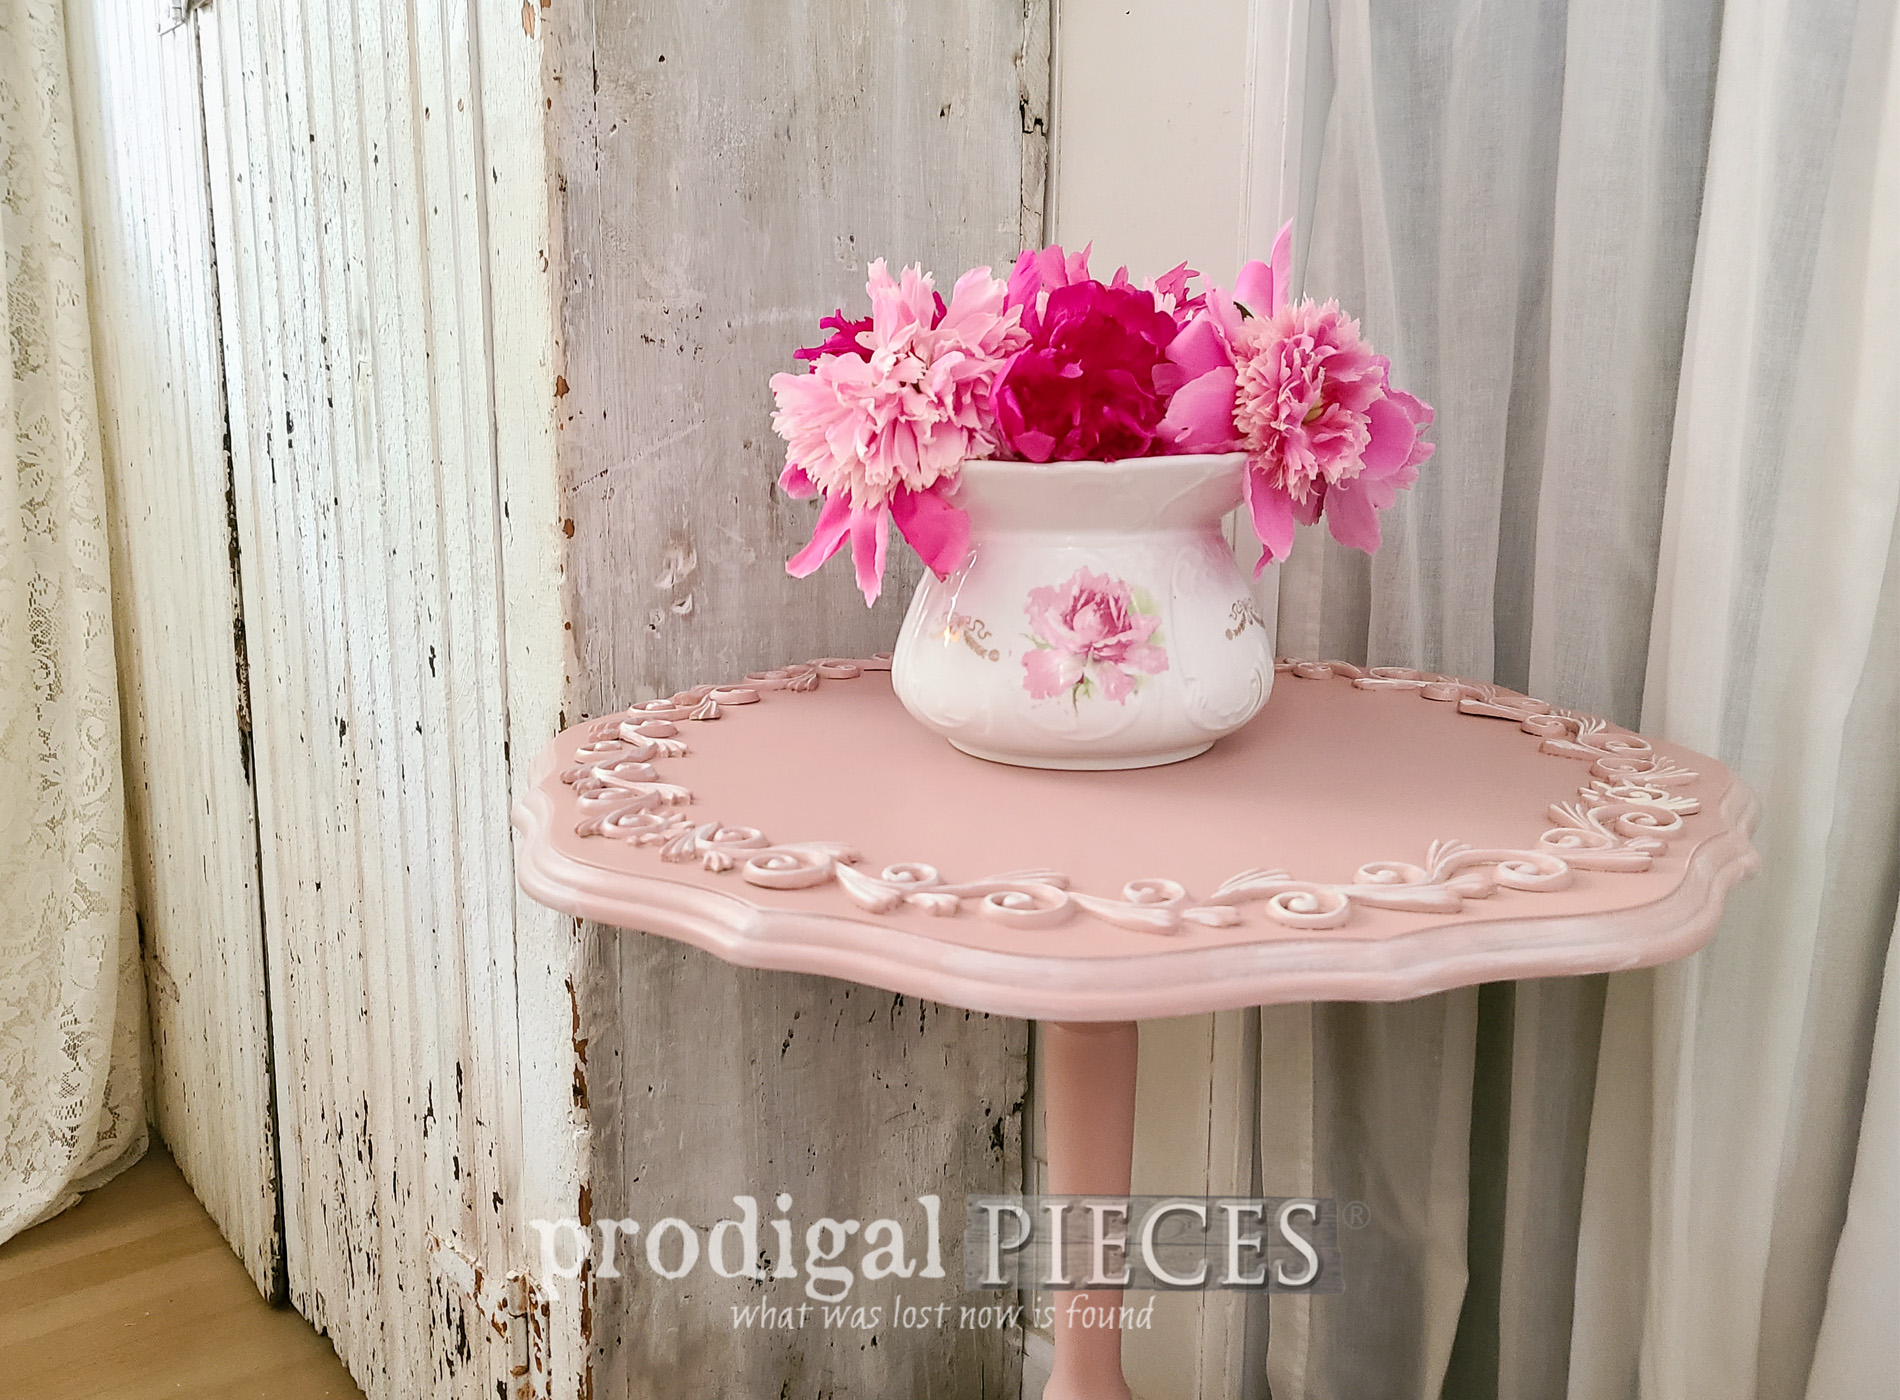 Featured Tilt Top Table with Scrollwork Design by Larissa of Prodigal Pieces | prodigalpieces.com #prodigalpieces #furniture #home #homedecor